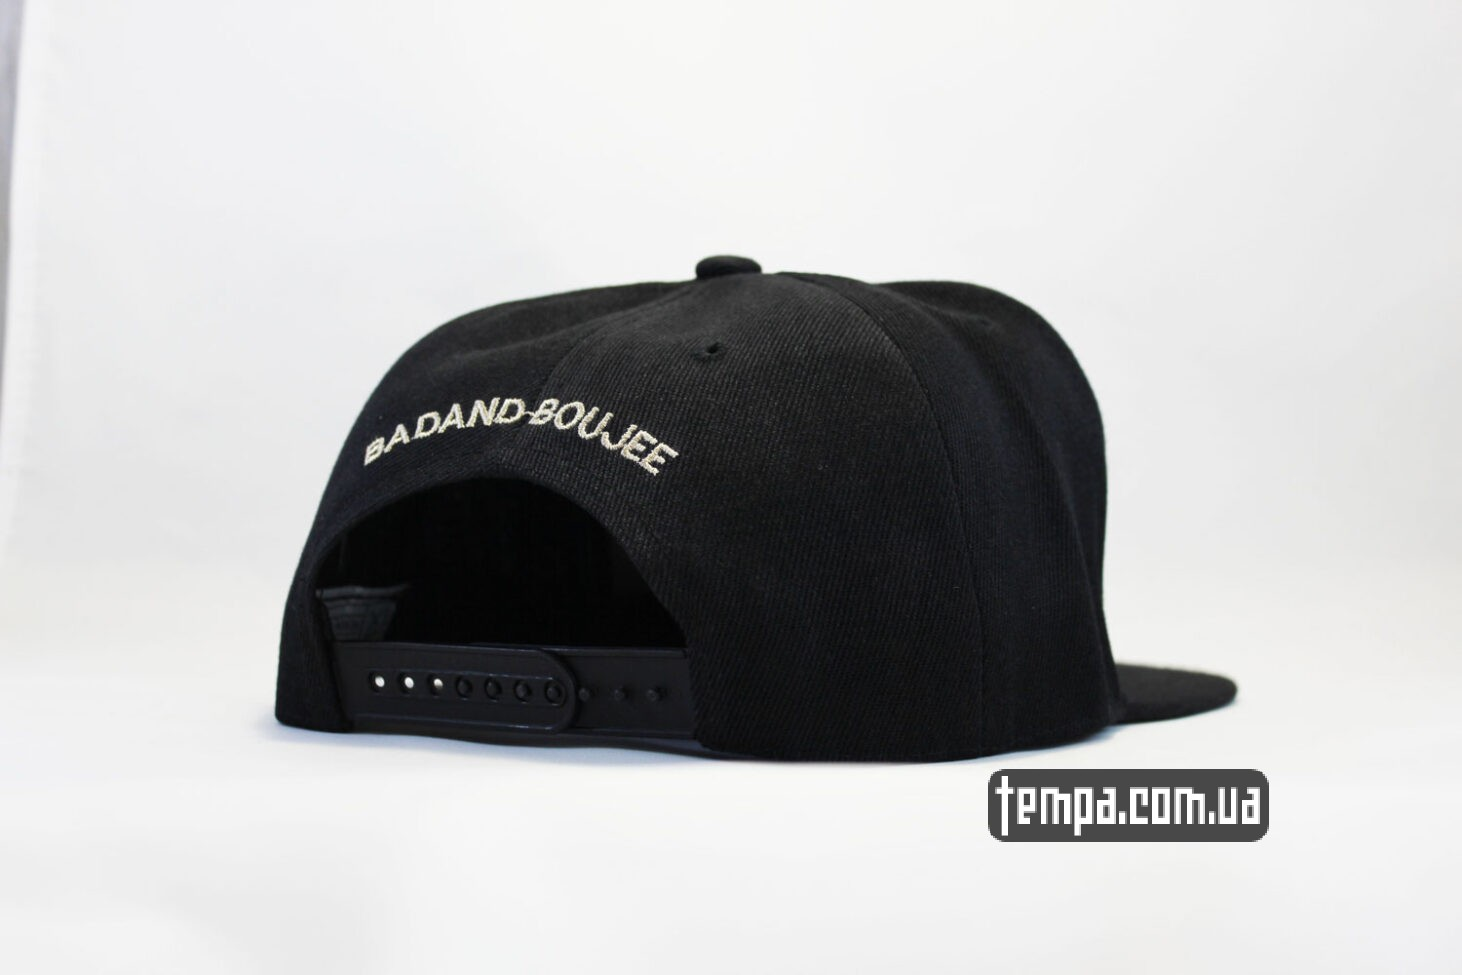 badand-boujee кепка snapback versace Cayle And Sons с черепом